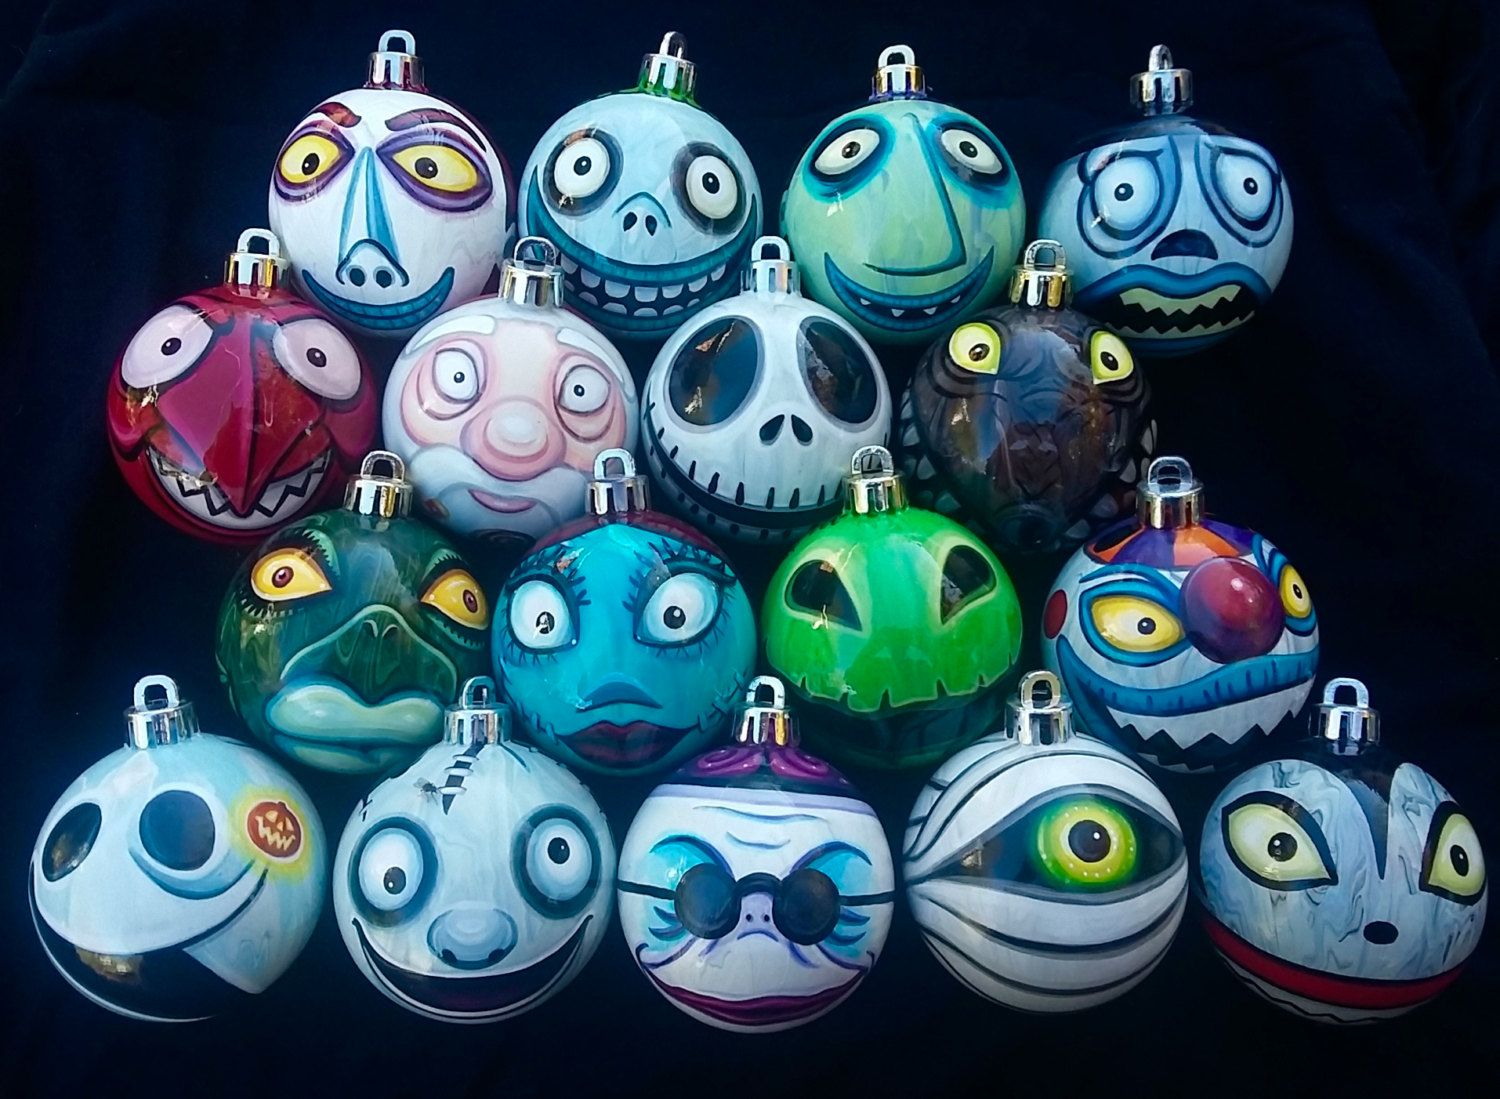 Any Character Nightmare Before Christmas Ornaments Pick Your Favorites Hand Painted Highly Detailed Shatterproof Made To Order In 2020 Nightmare Before Christmas Ornaments Nightmare Before Christmas Tree Nightmare Before Christmas Characters